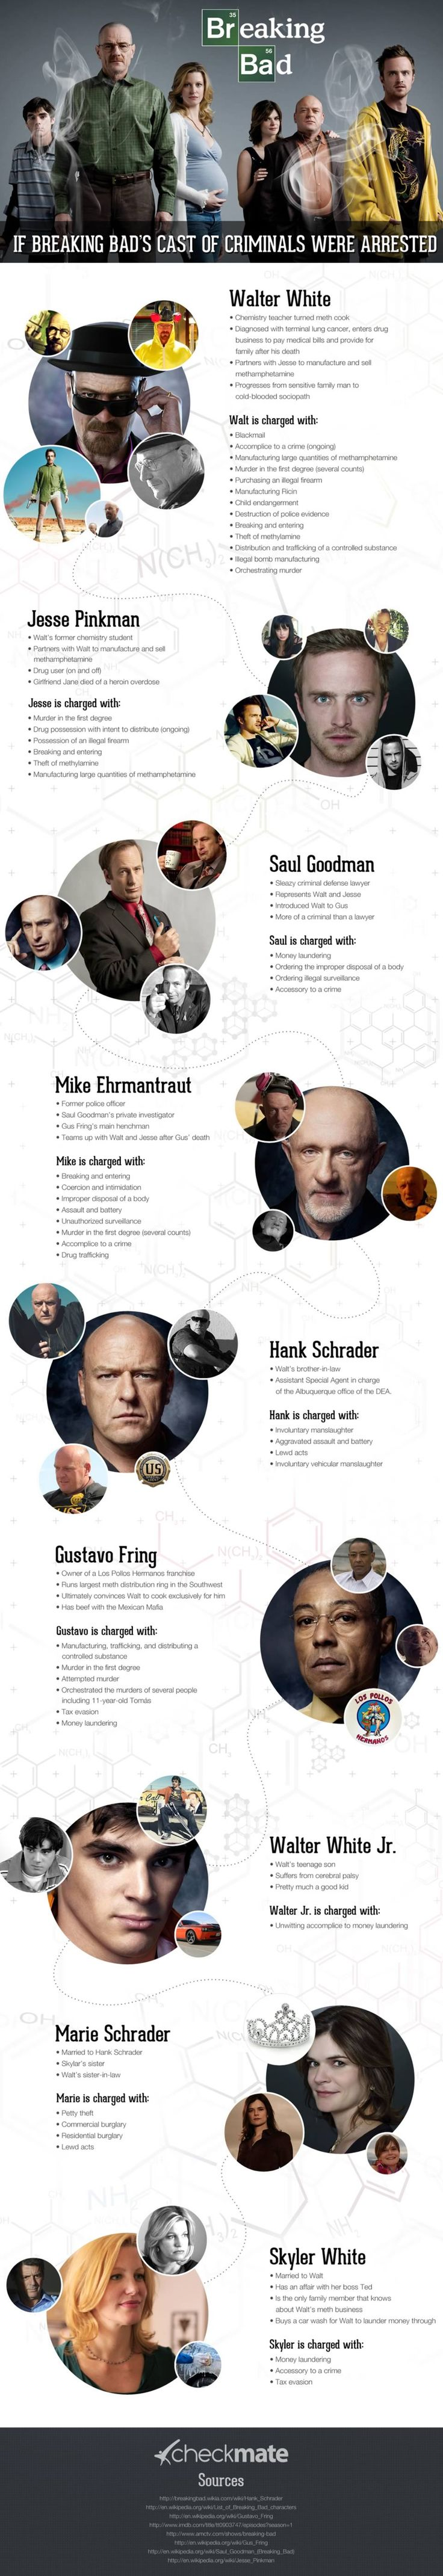 Charges on Breaking Bad characters